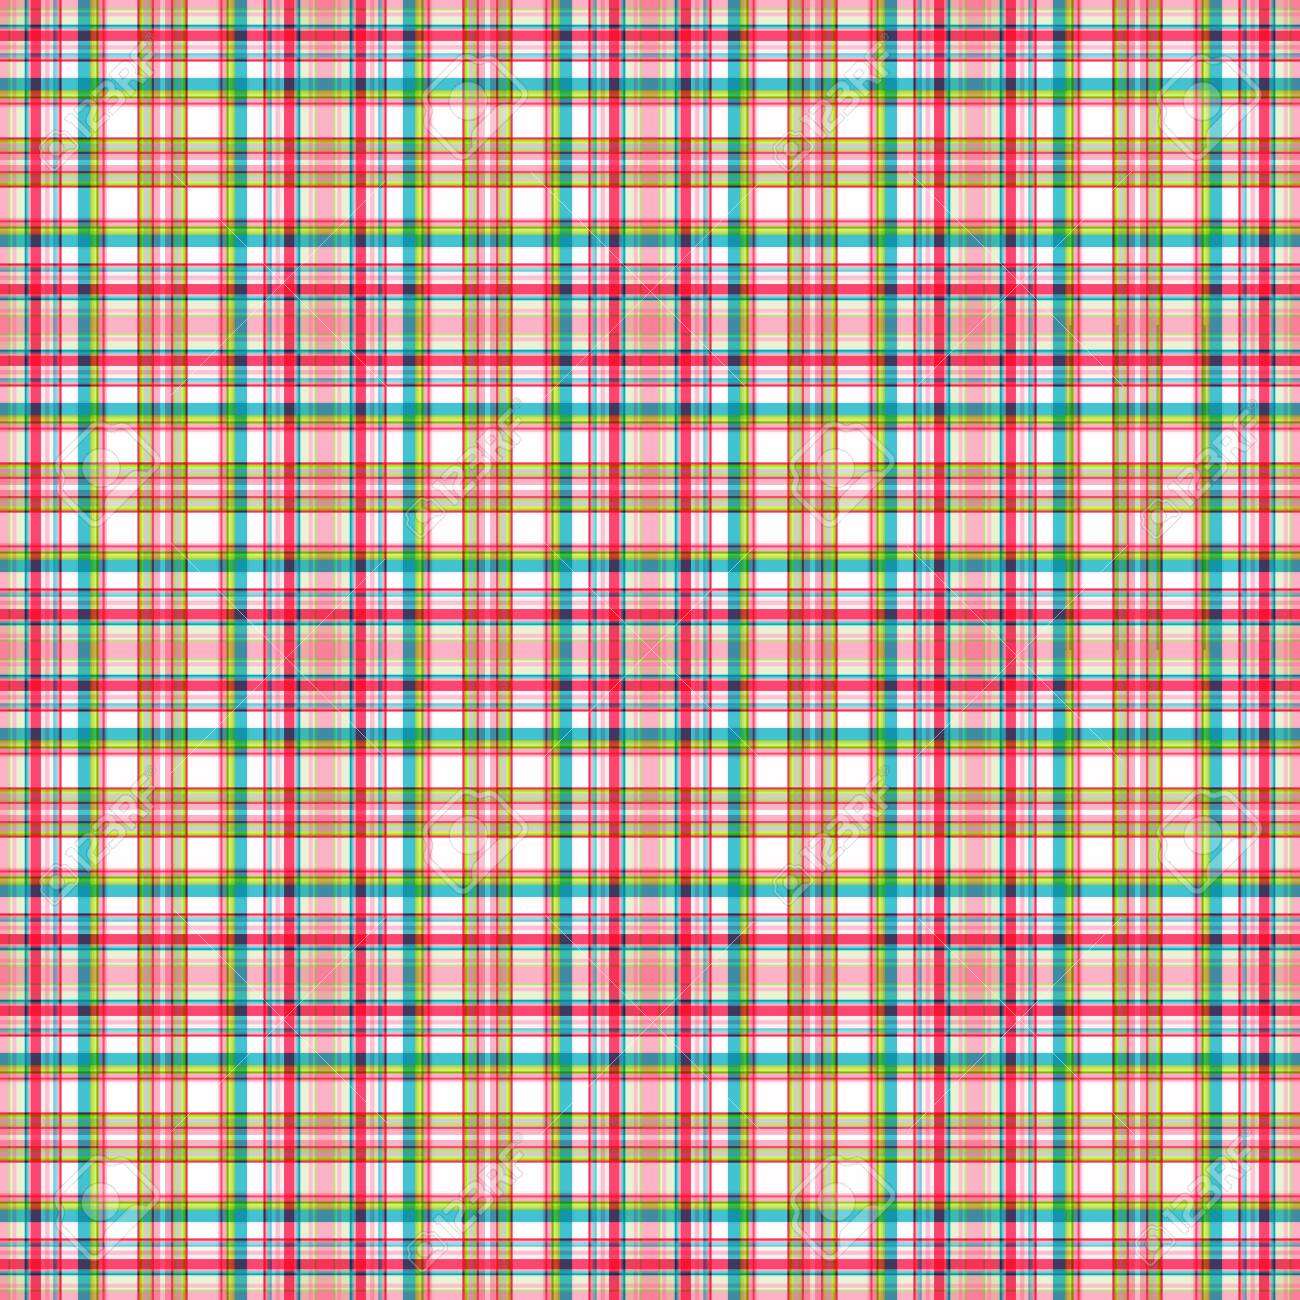 Checkered seamless pattern, subtle bright pink, turquoise and yellow-green stripes, white background. Great for decorating fabrics, textiles, gift wrapping, printed matter, interiors, advertising. - 154408259